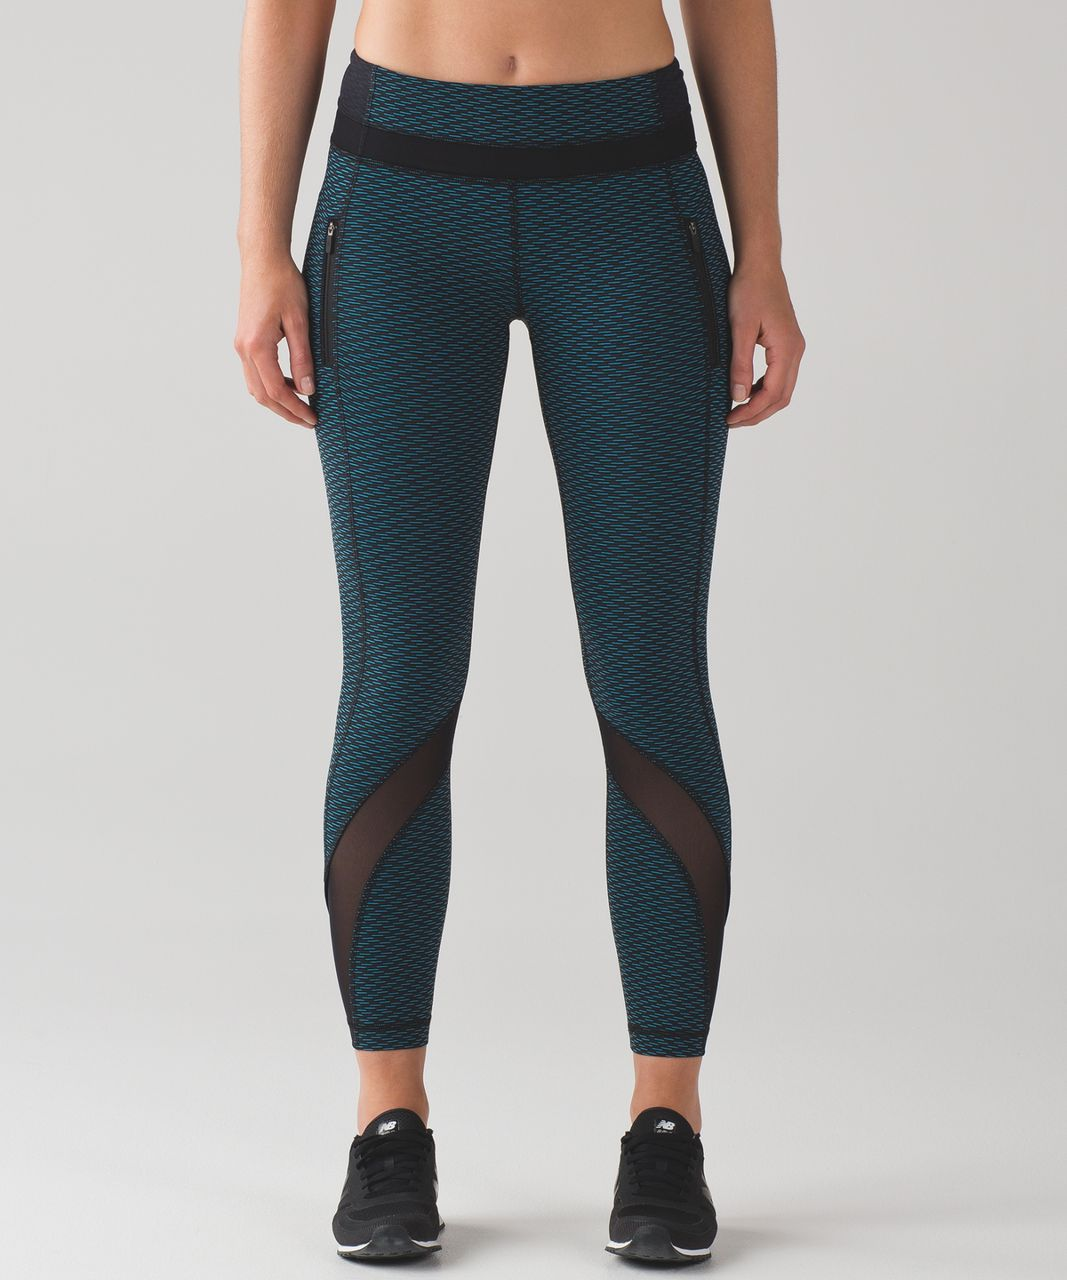 50609bbae0 Lululemon Inspire Tight II - Score Jacquard Black Indian Ocean / Black